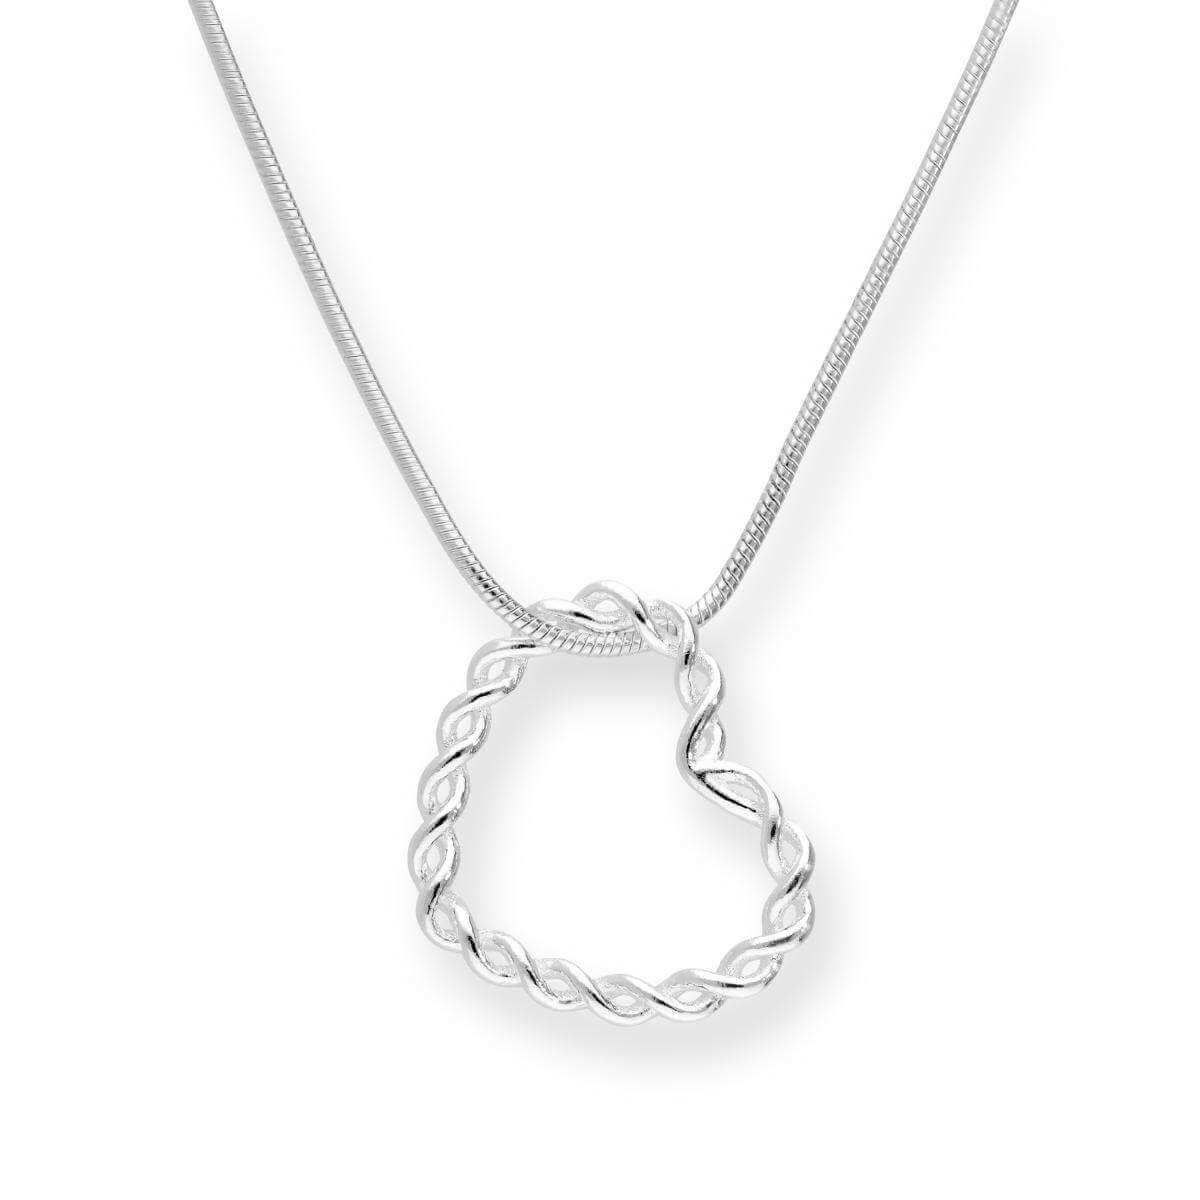 Sterling Silver Twisted Floating Heart Pendant Necklace